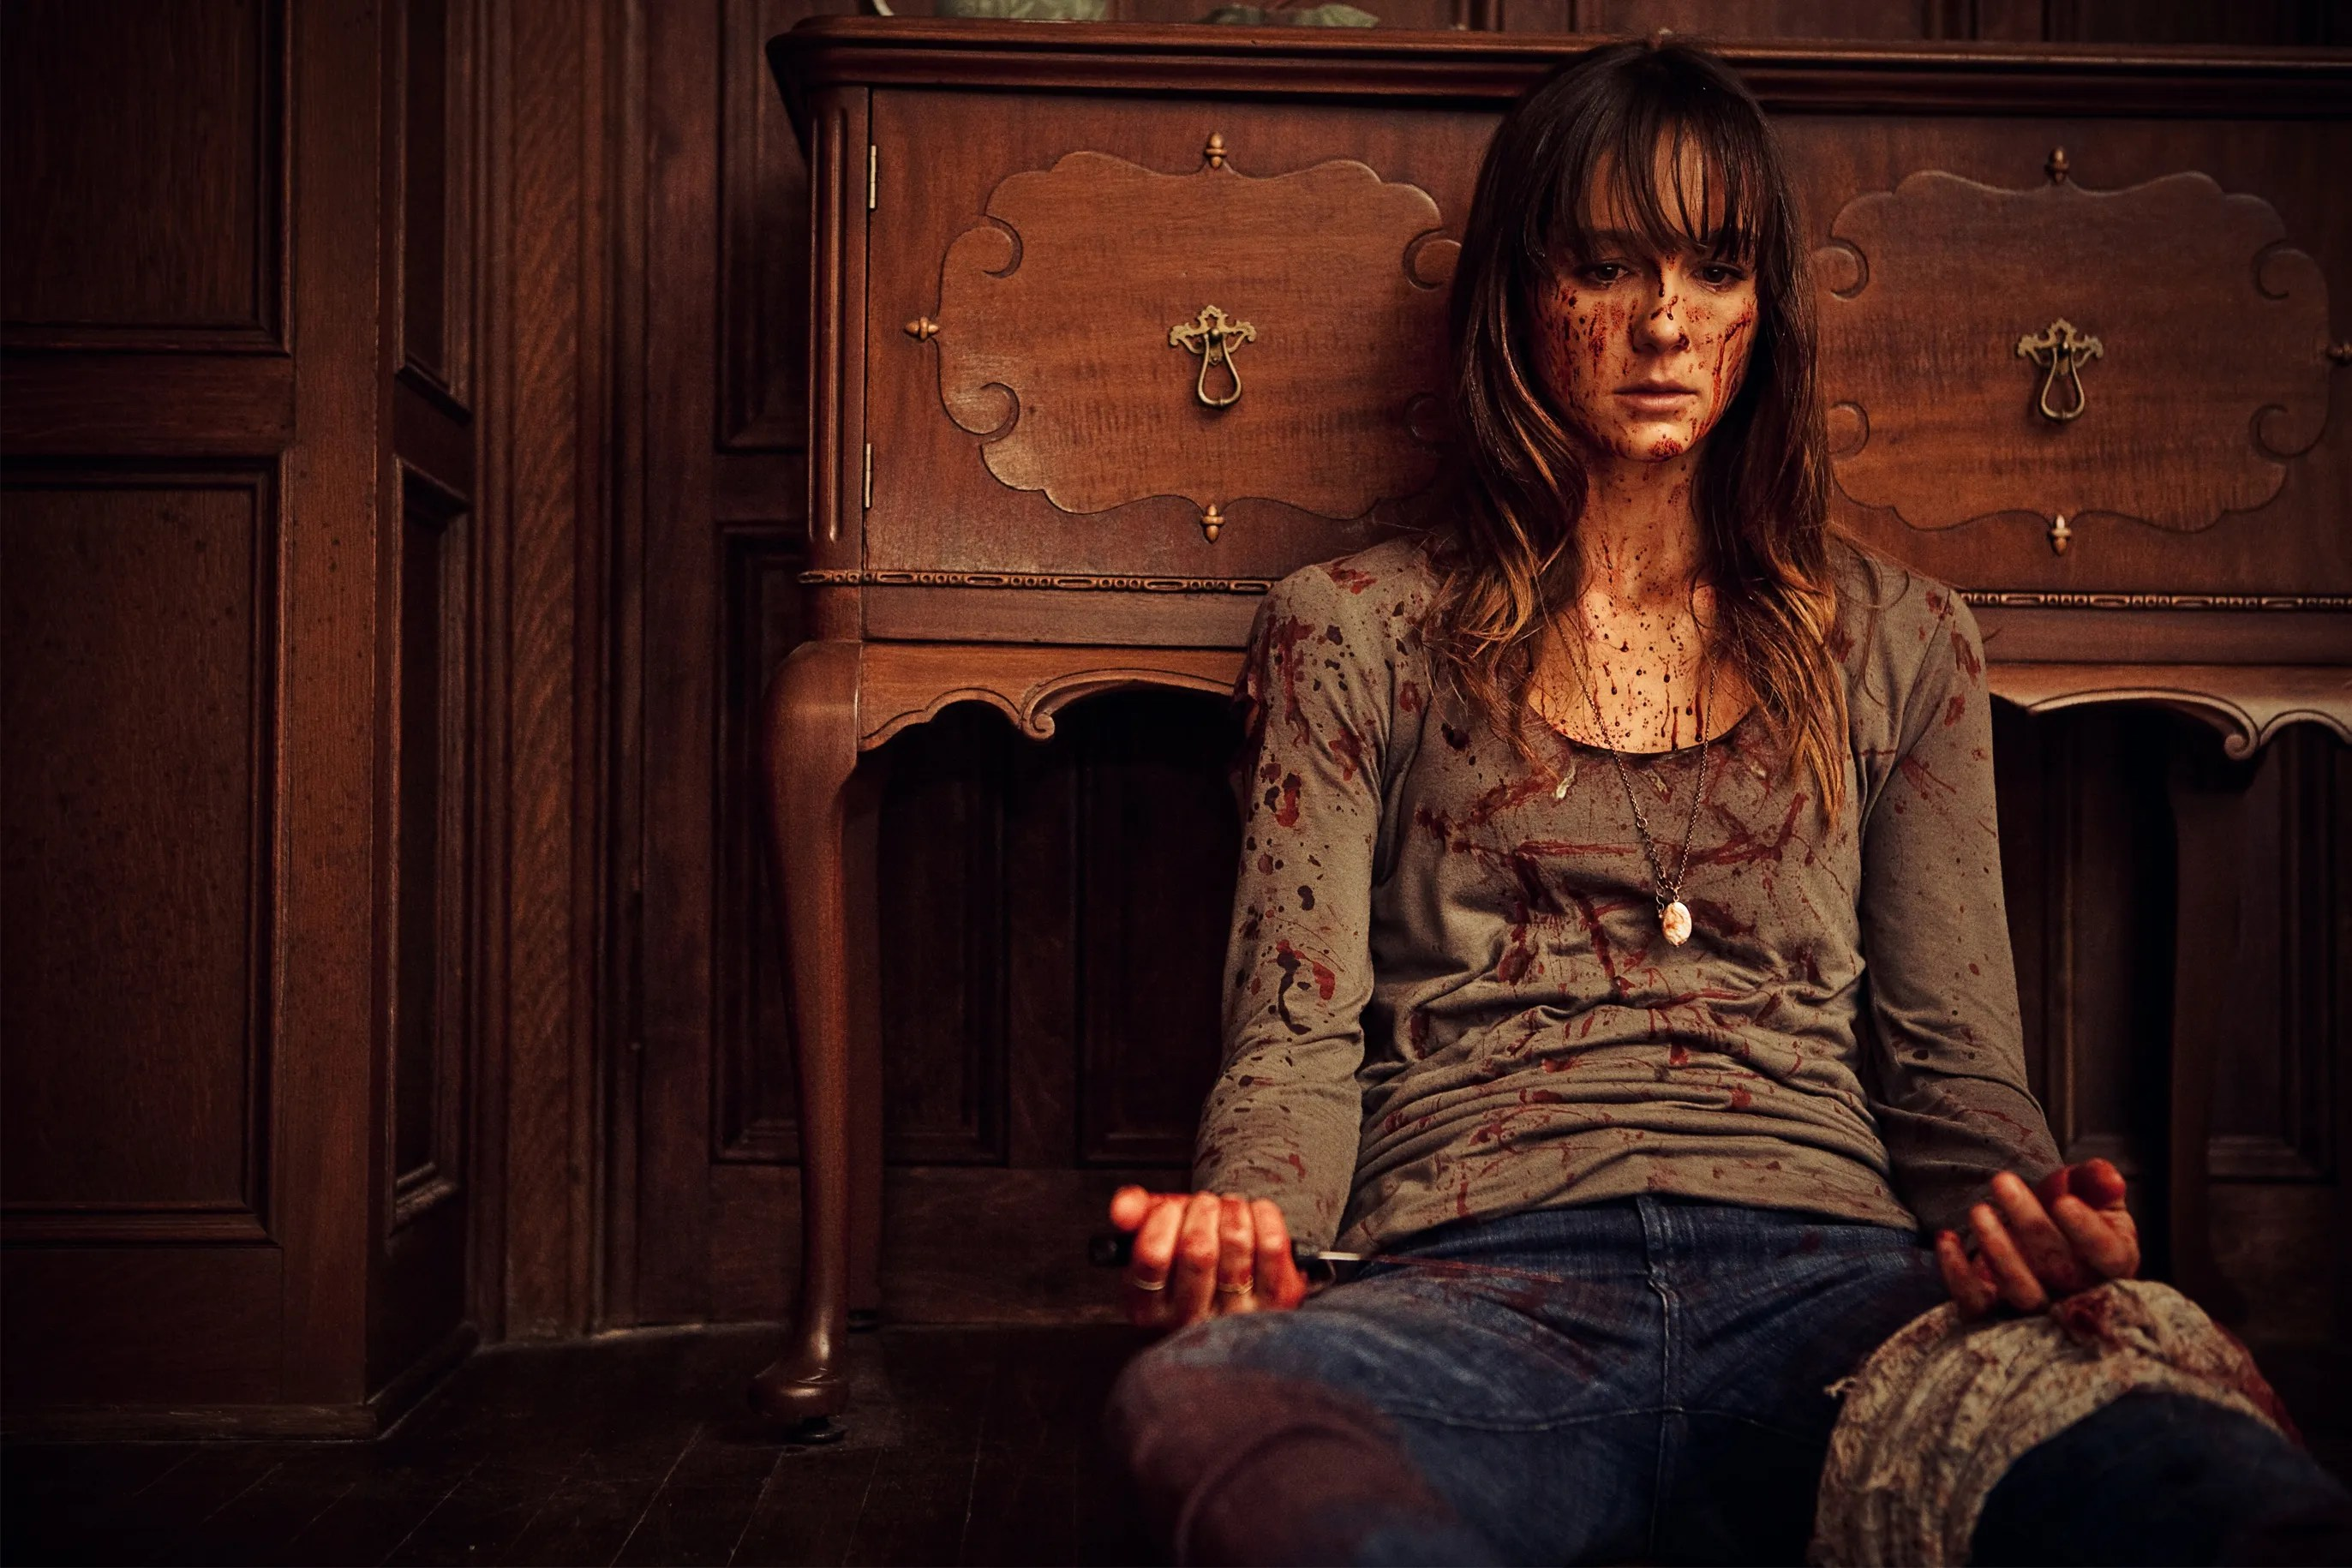 Sharni Vinson Talks You Re Next Playing The Survivalist Girl Embracing The Film S Stunts And